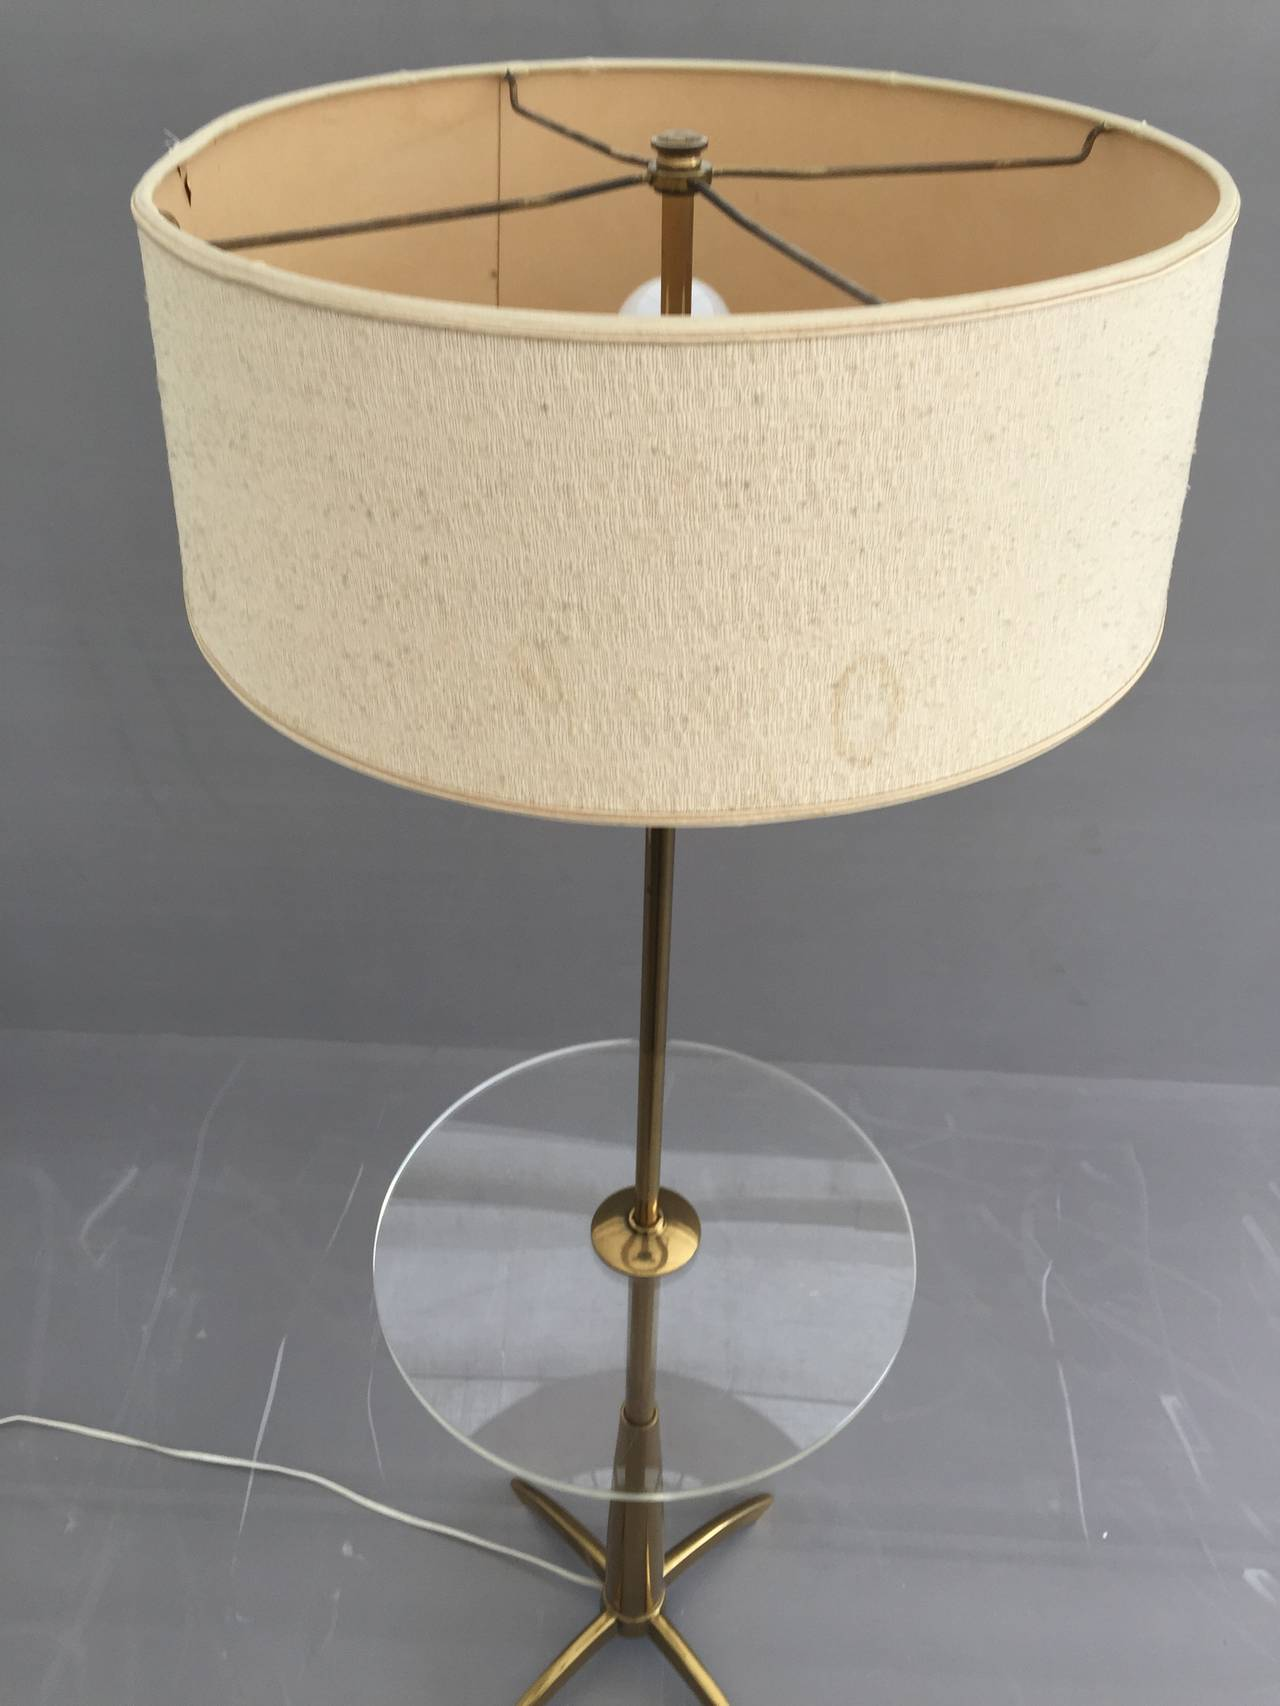 Brass and Acrylic Floor Lamp End Table In Excellent Condition For Sale In North Hollywood, CA